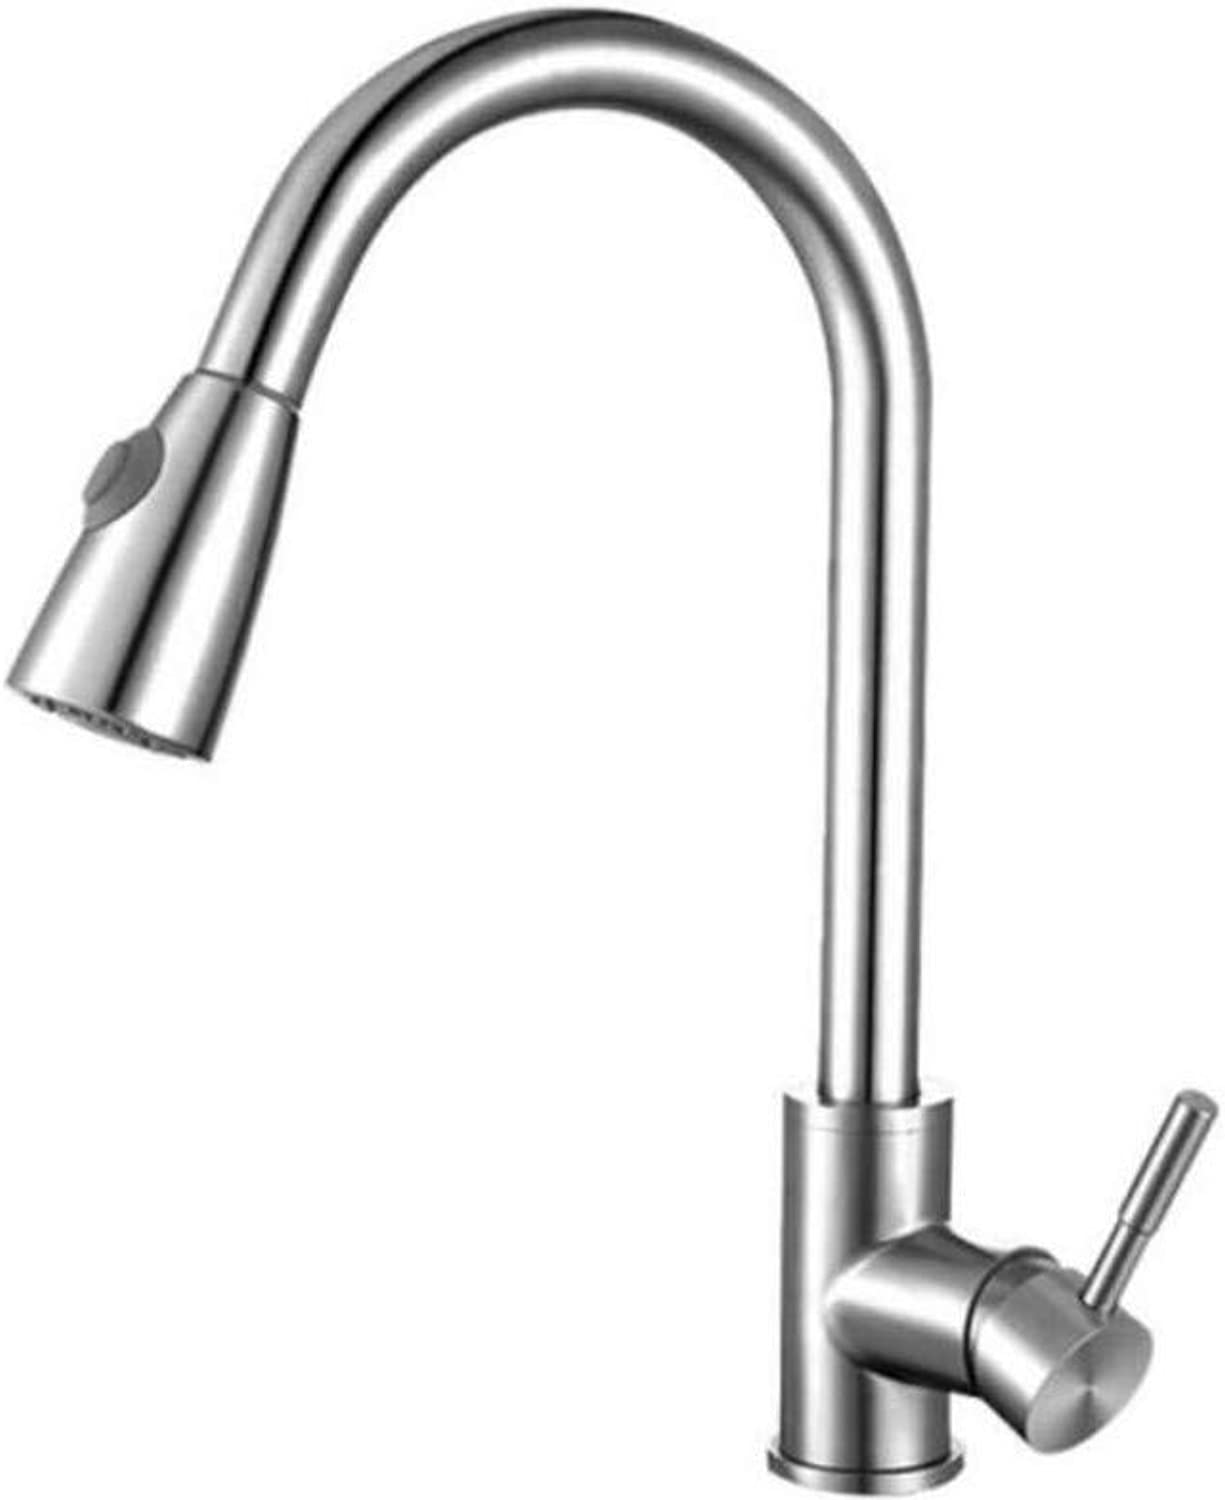 Taps Kitchen Sinktaps Mixer Swivel Faucet Sink Kitchen Pull Faucet Cold and Hot Basin